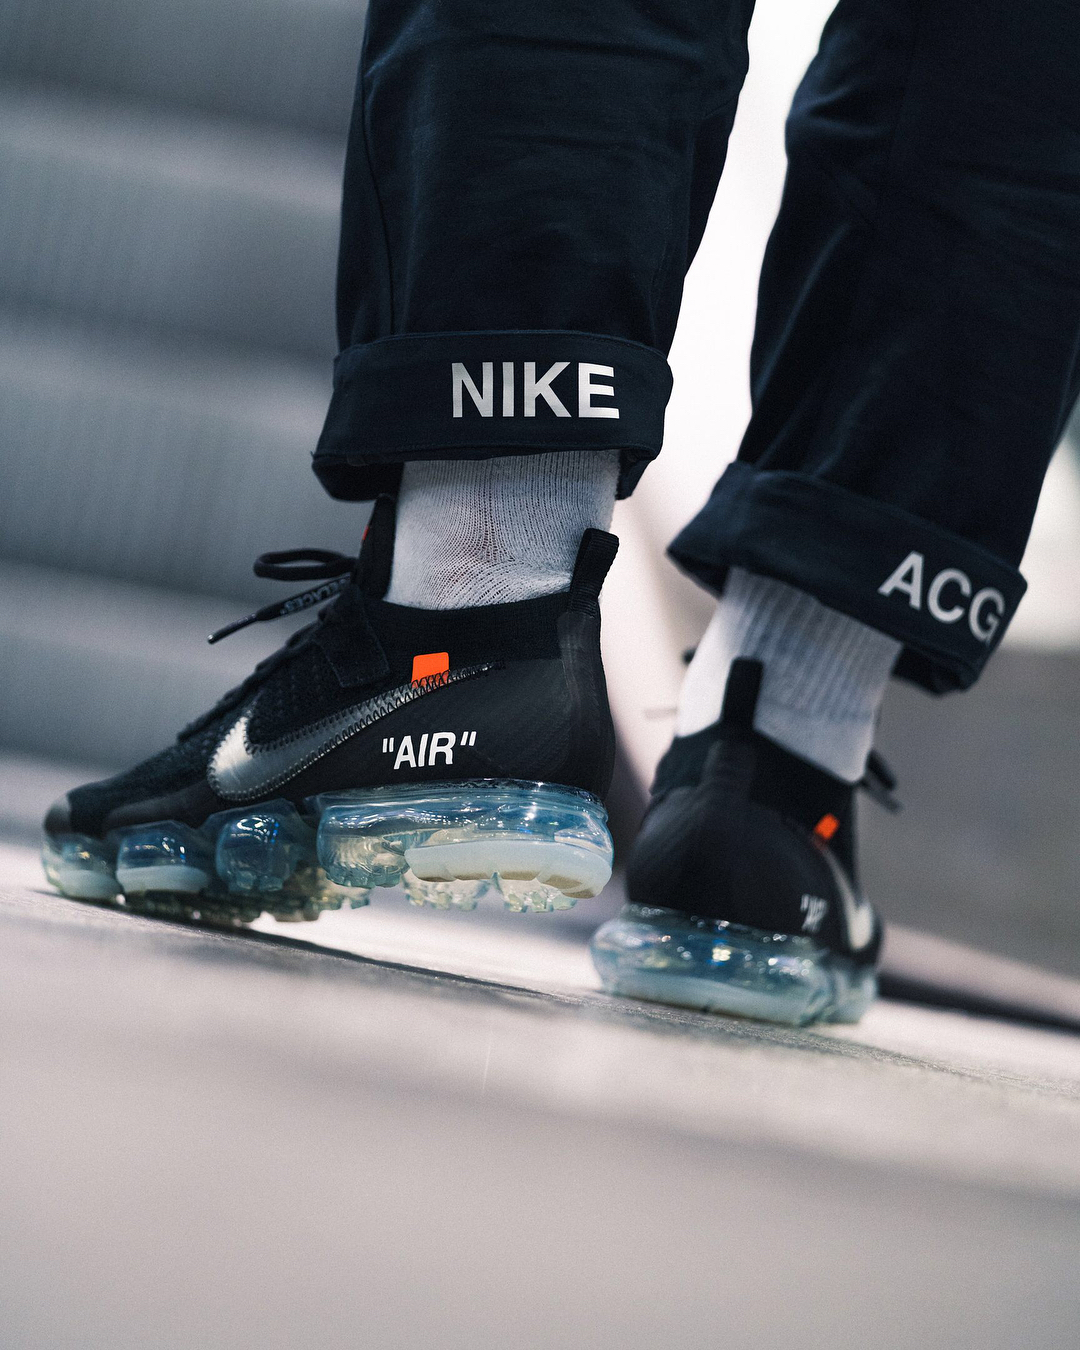 off-white-nike-air-vapormax-aa3831-002-release-20180330